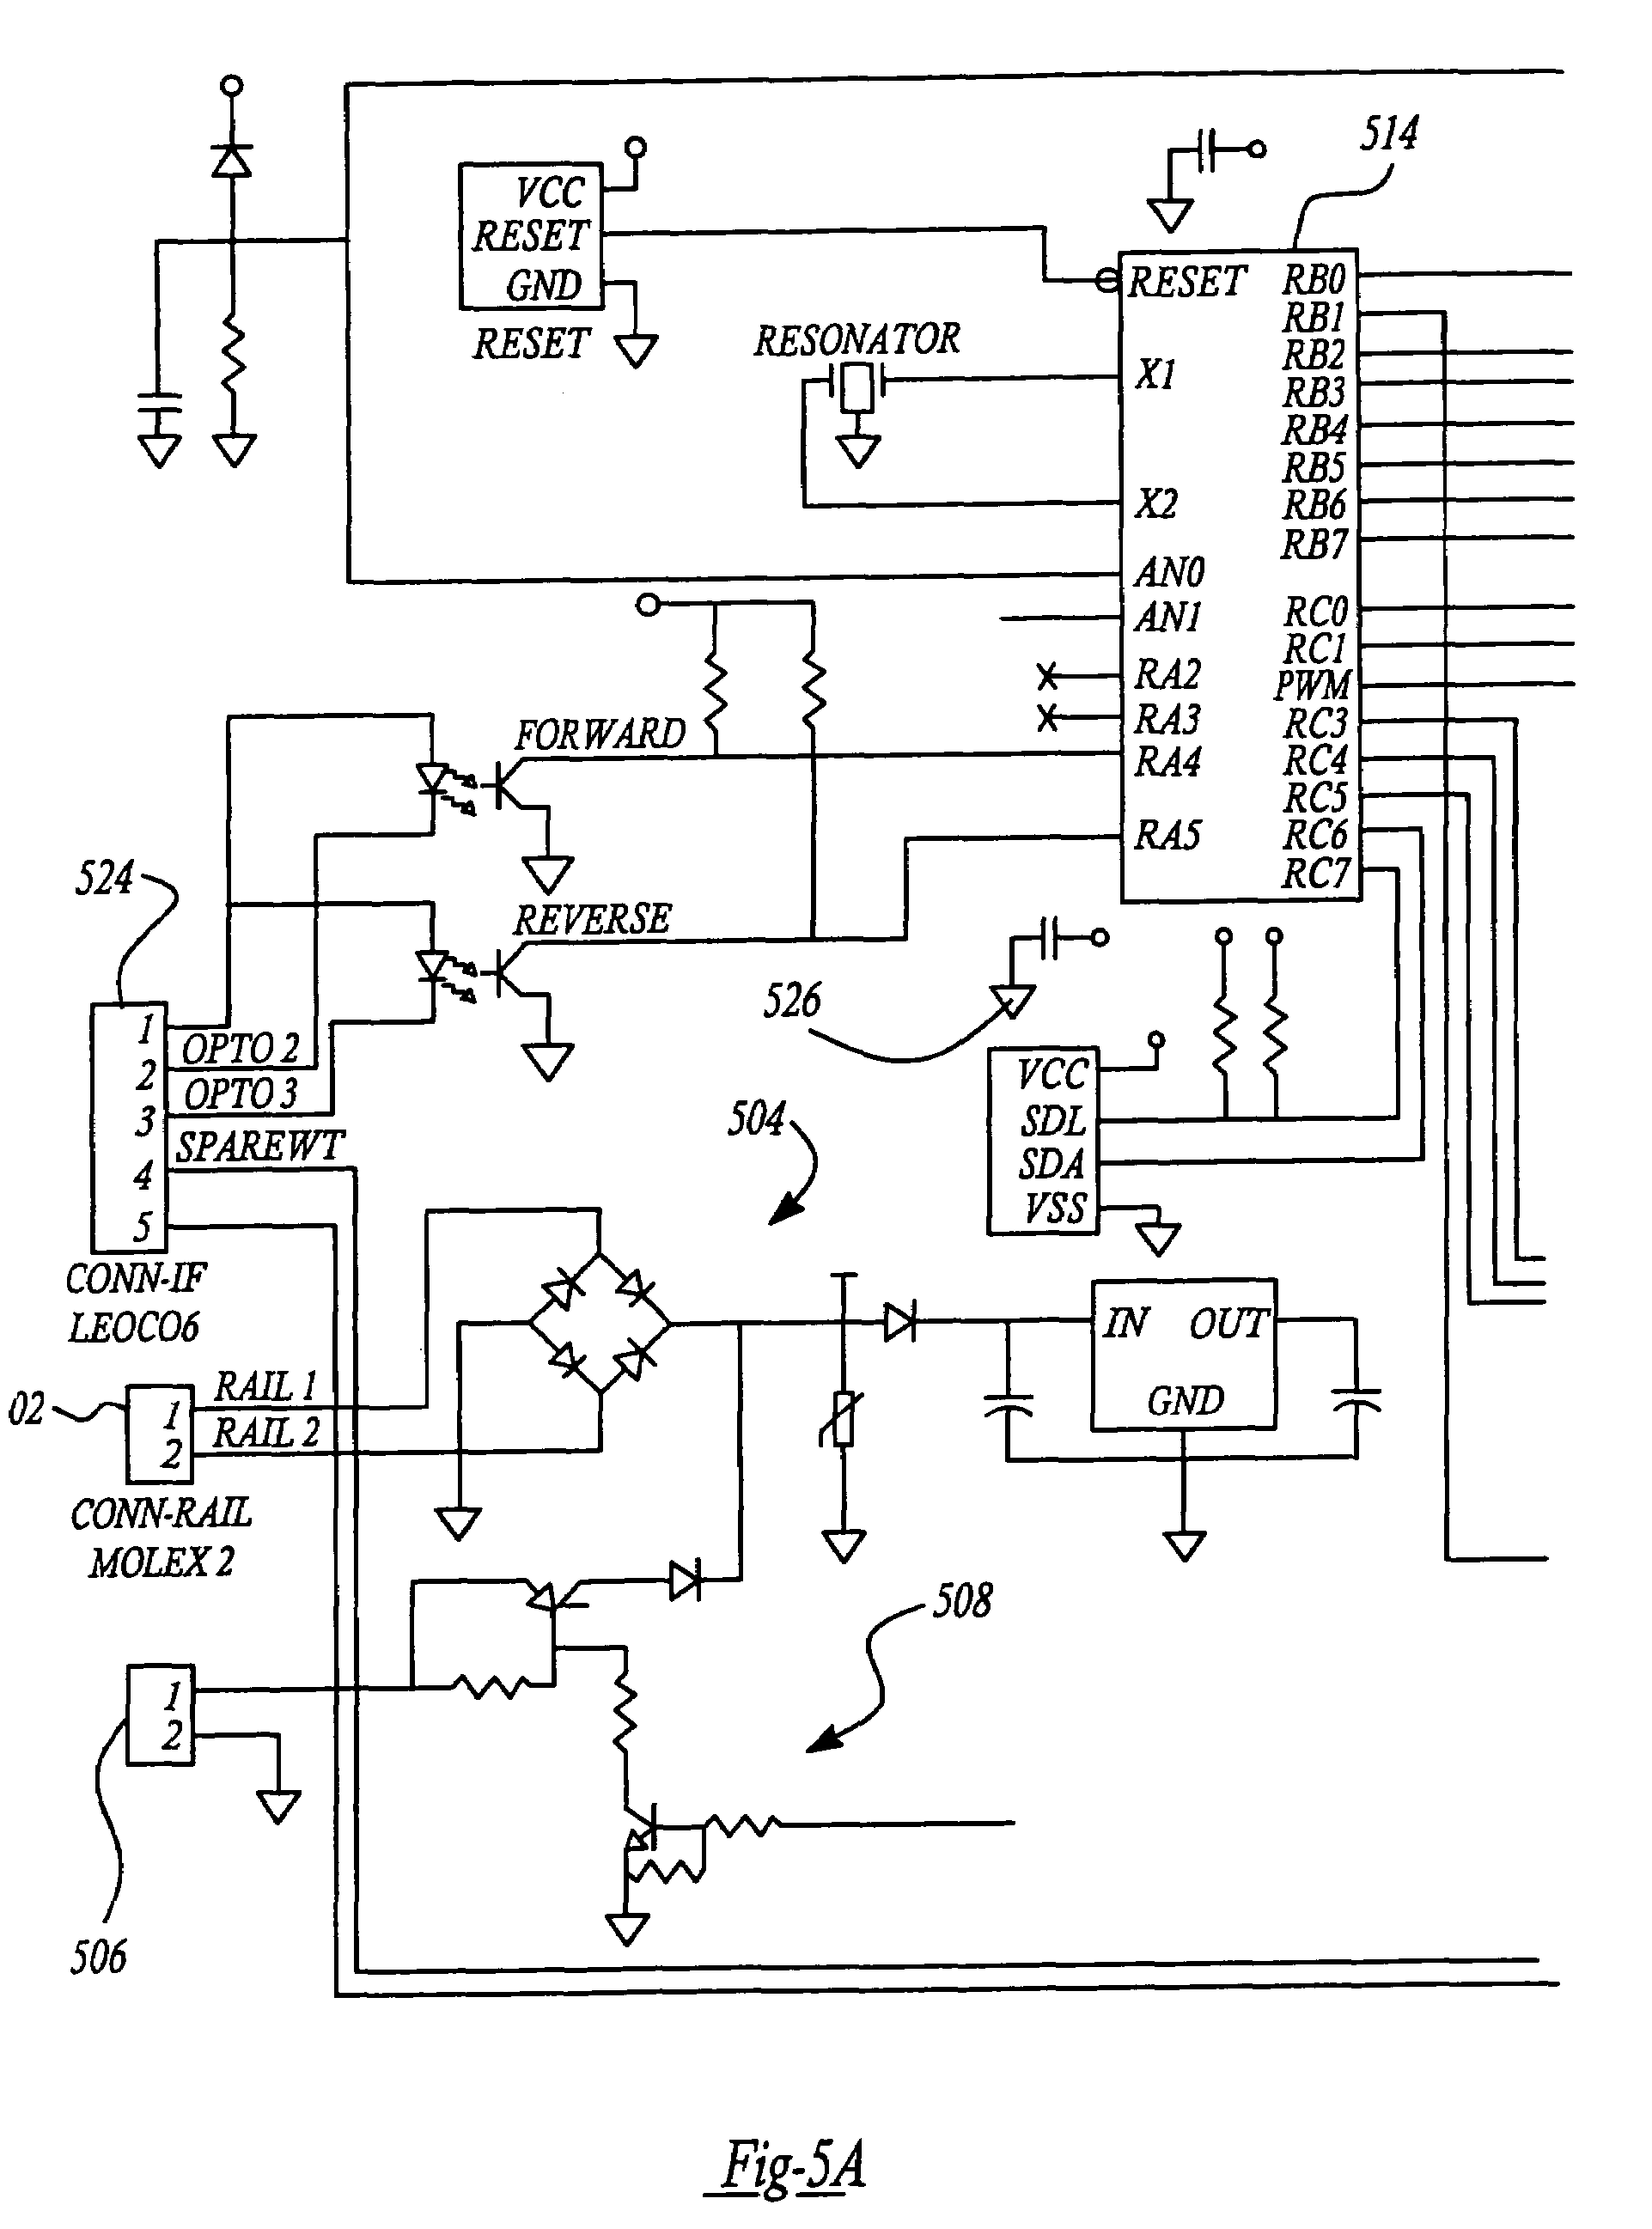 model railway signal wiring diagram stihl fs 250 parts patent us7298103 control and motor arrangement for use